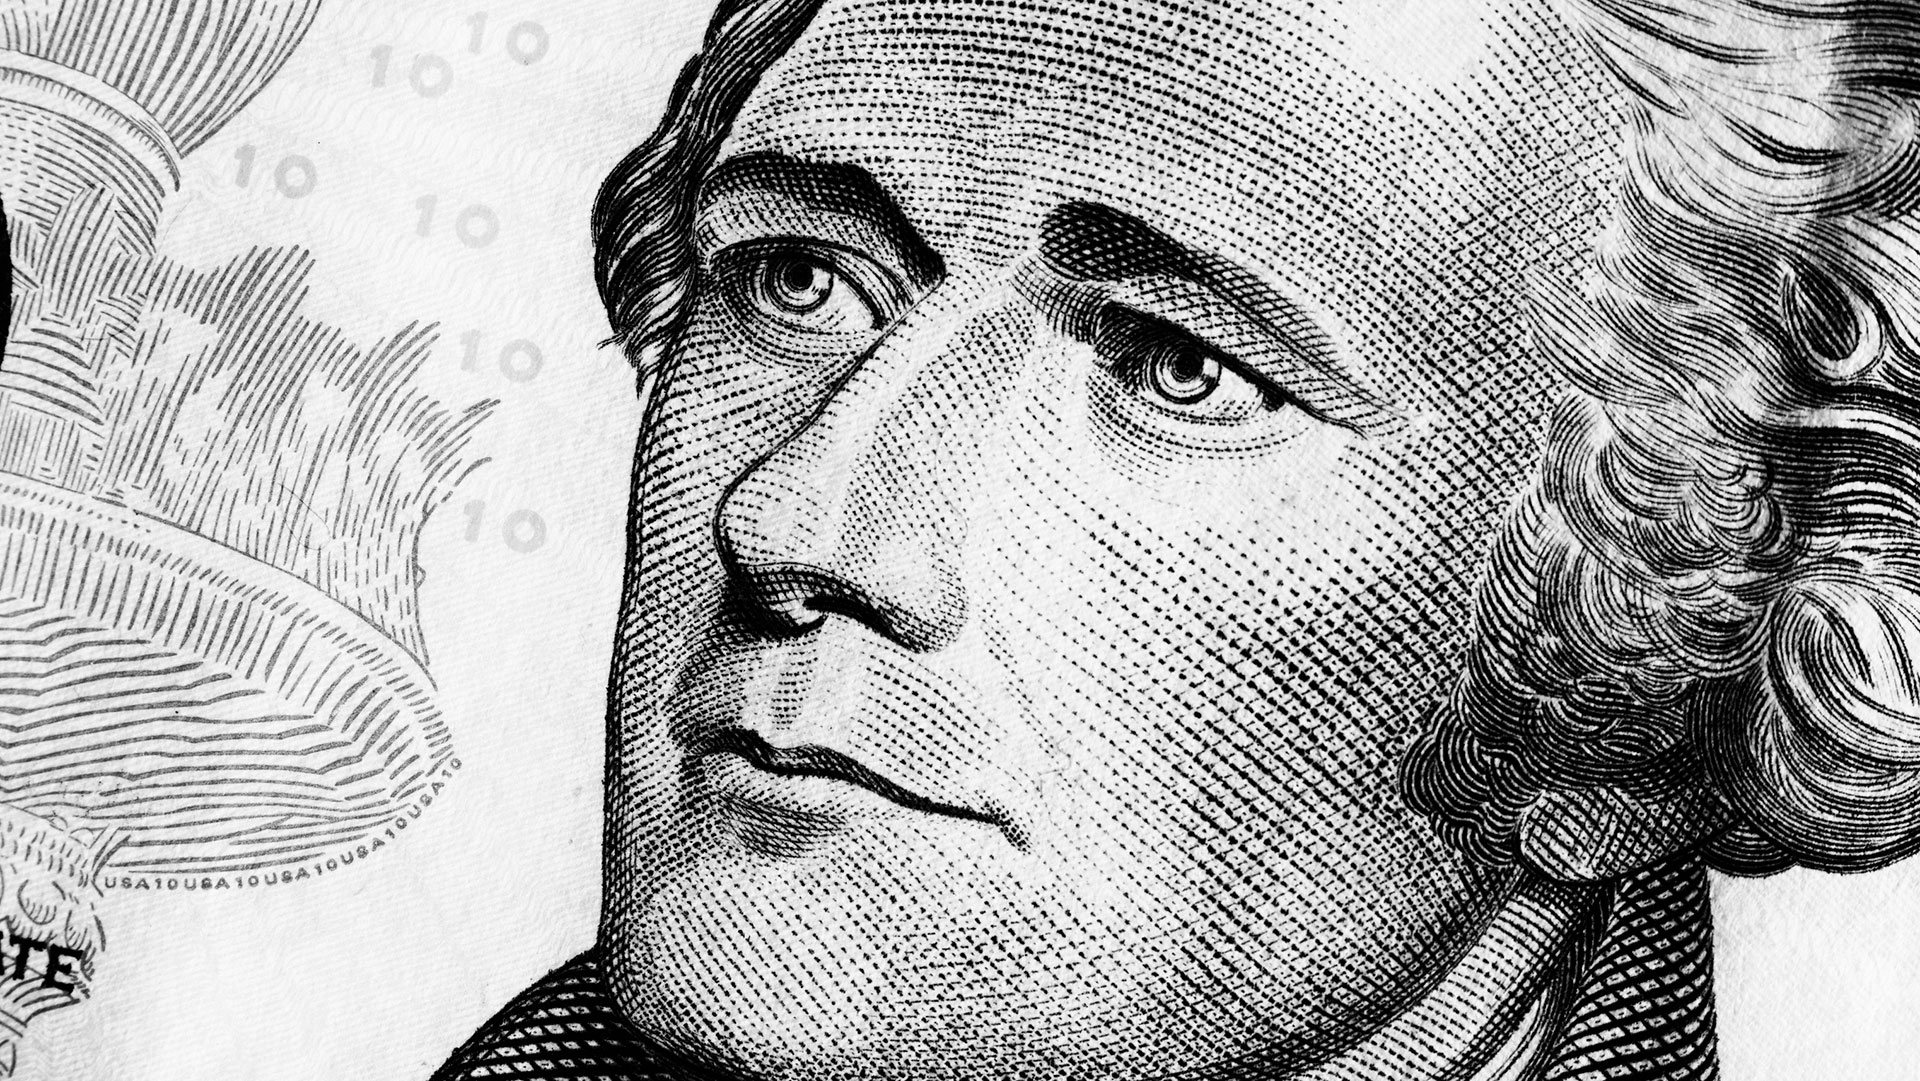 hamiltonian federalists Federalists v republicans the federalist party was america's first political party, formed chiefly by secretary of the treasury alexander hamilton during his tenure in george washington's cabinet.